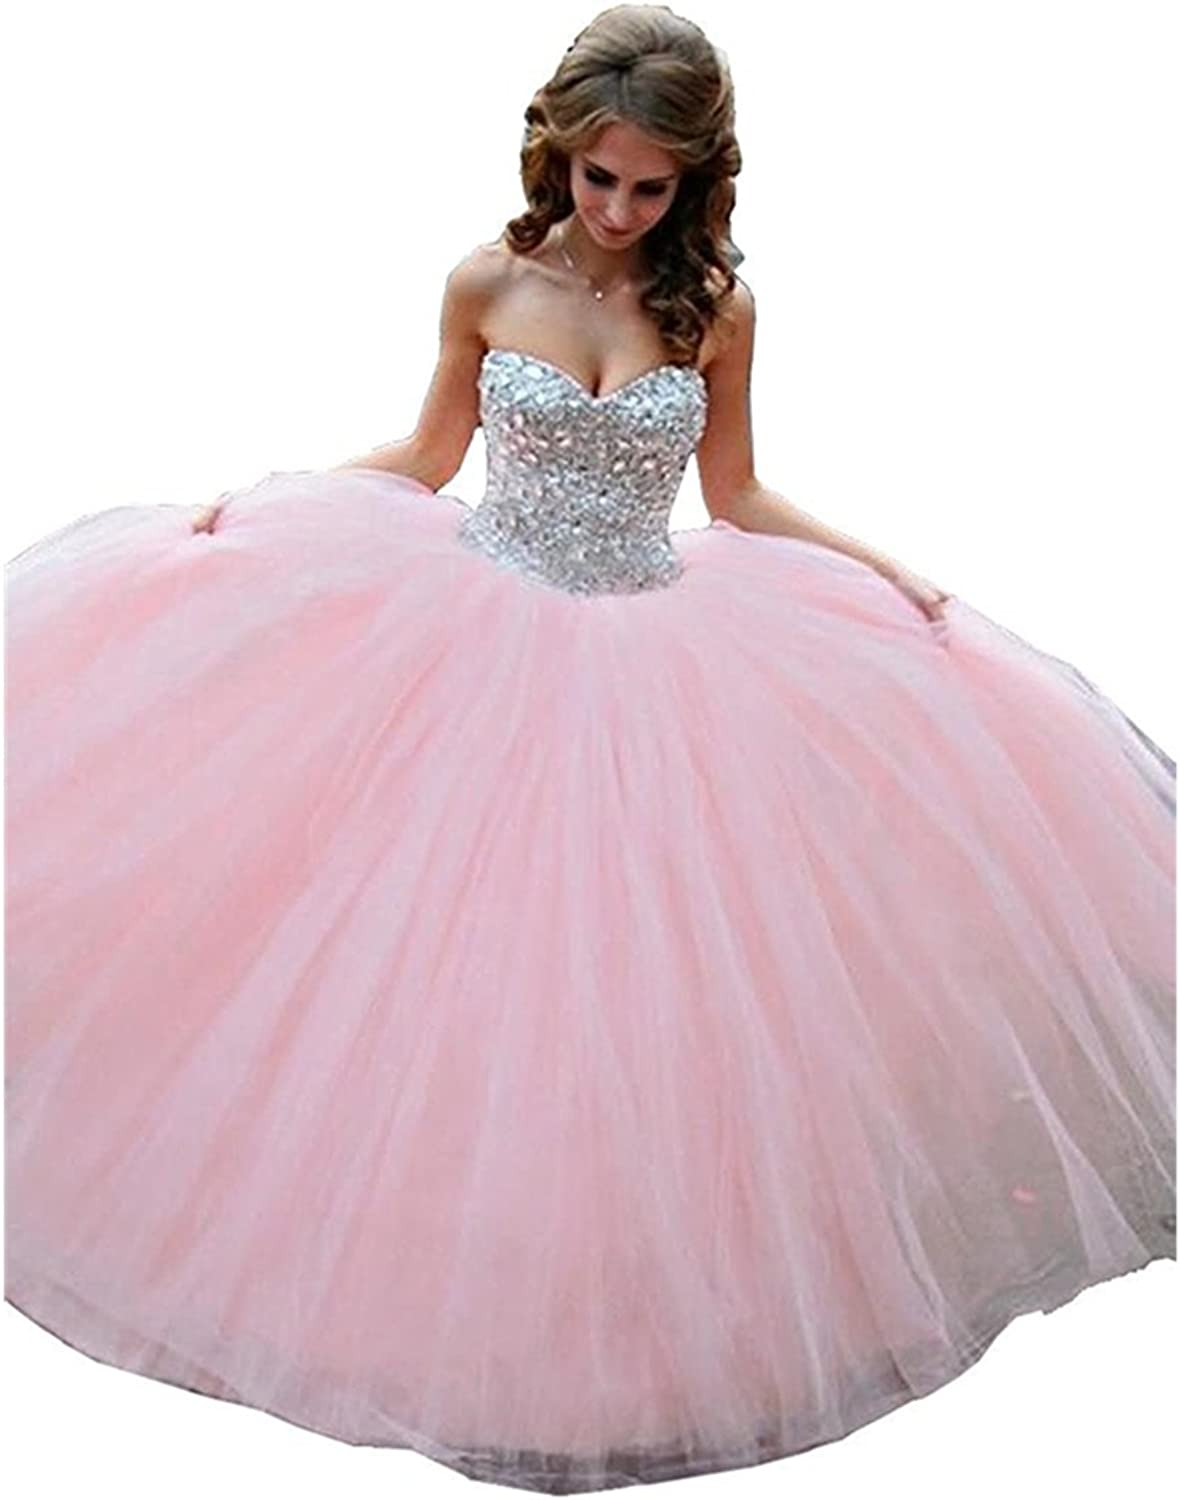 BEALEGAN Lady Women's Beaded Sweetheart Ball Gown Prom Quinceanera Dresses